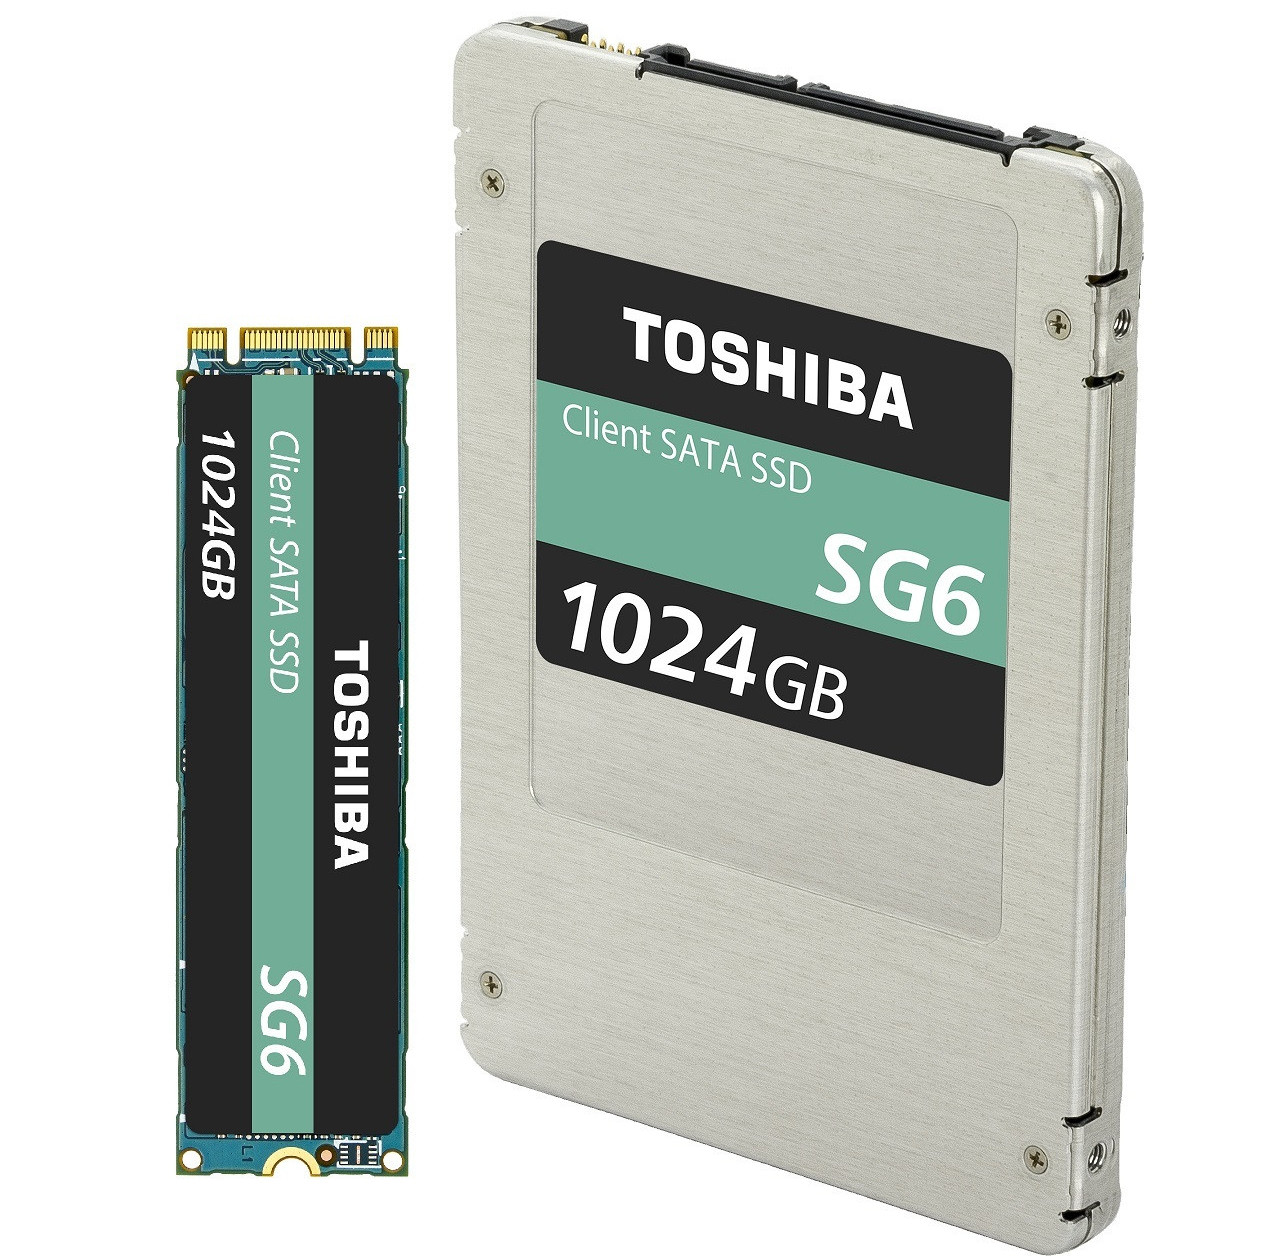 News Posts Matching Tlc Techpowerup V Gen Ssd Sata 3 120gb Kalender Thanks To Improved Flash Memory Management And Performance Active Power Consumption Is Cut By Approximately 40 Compared Previous Generation Products